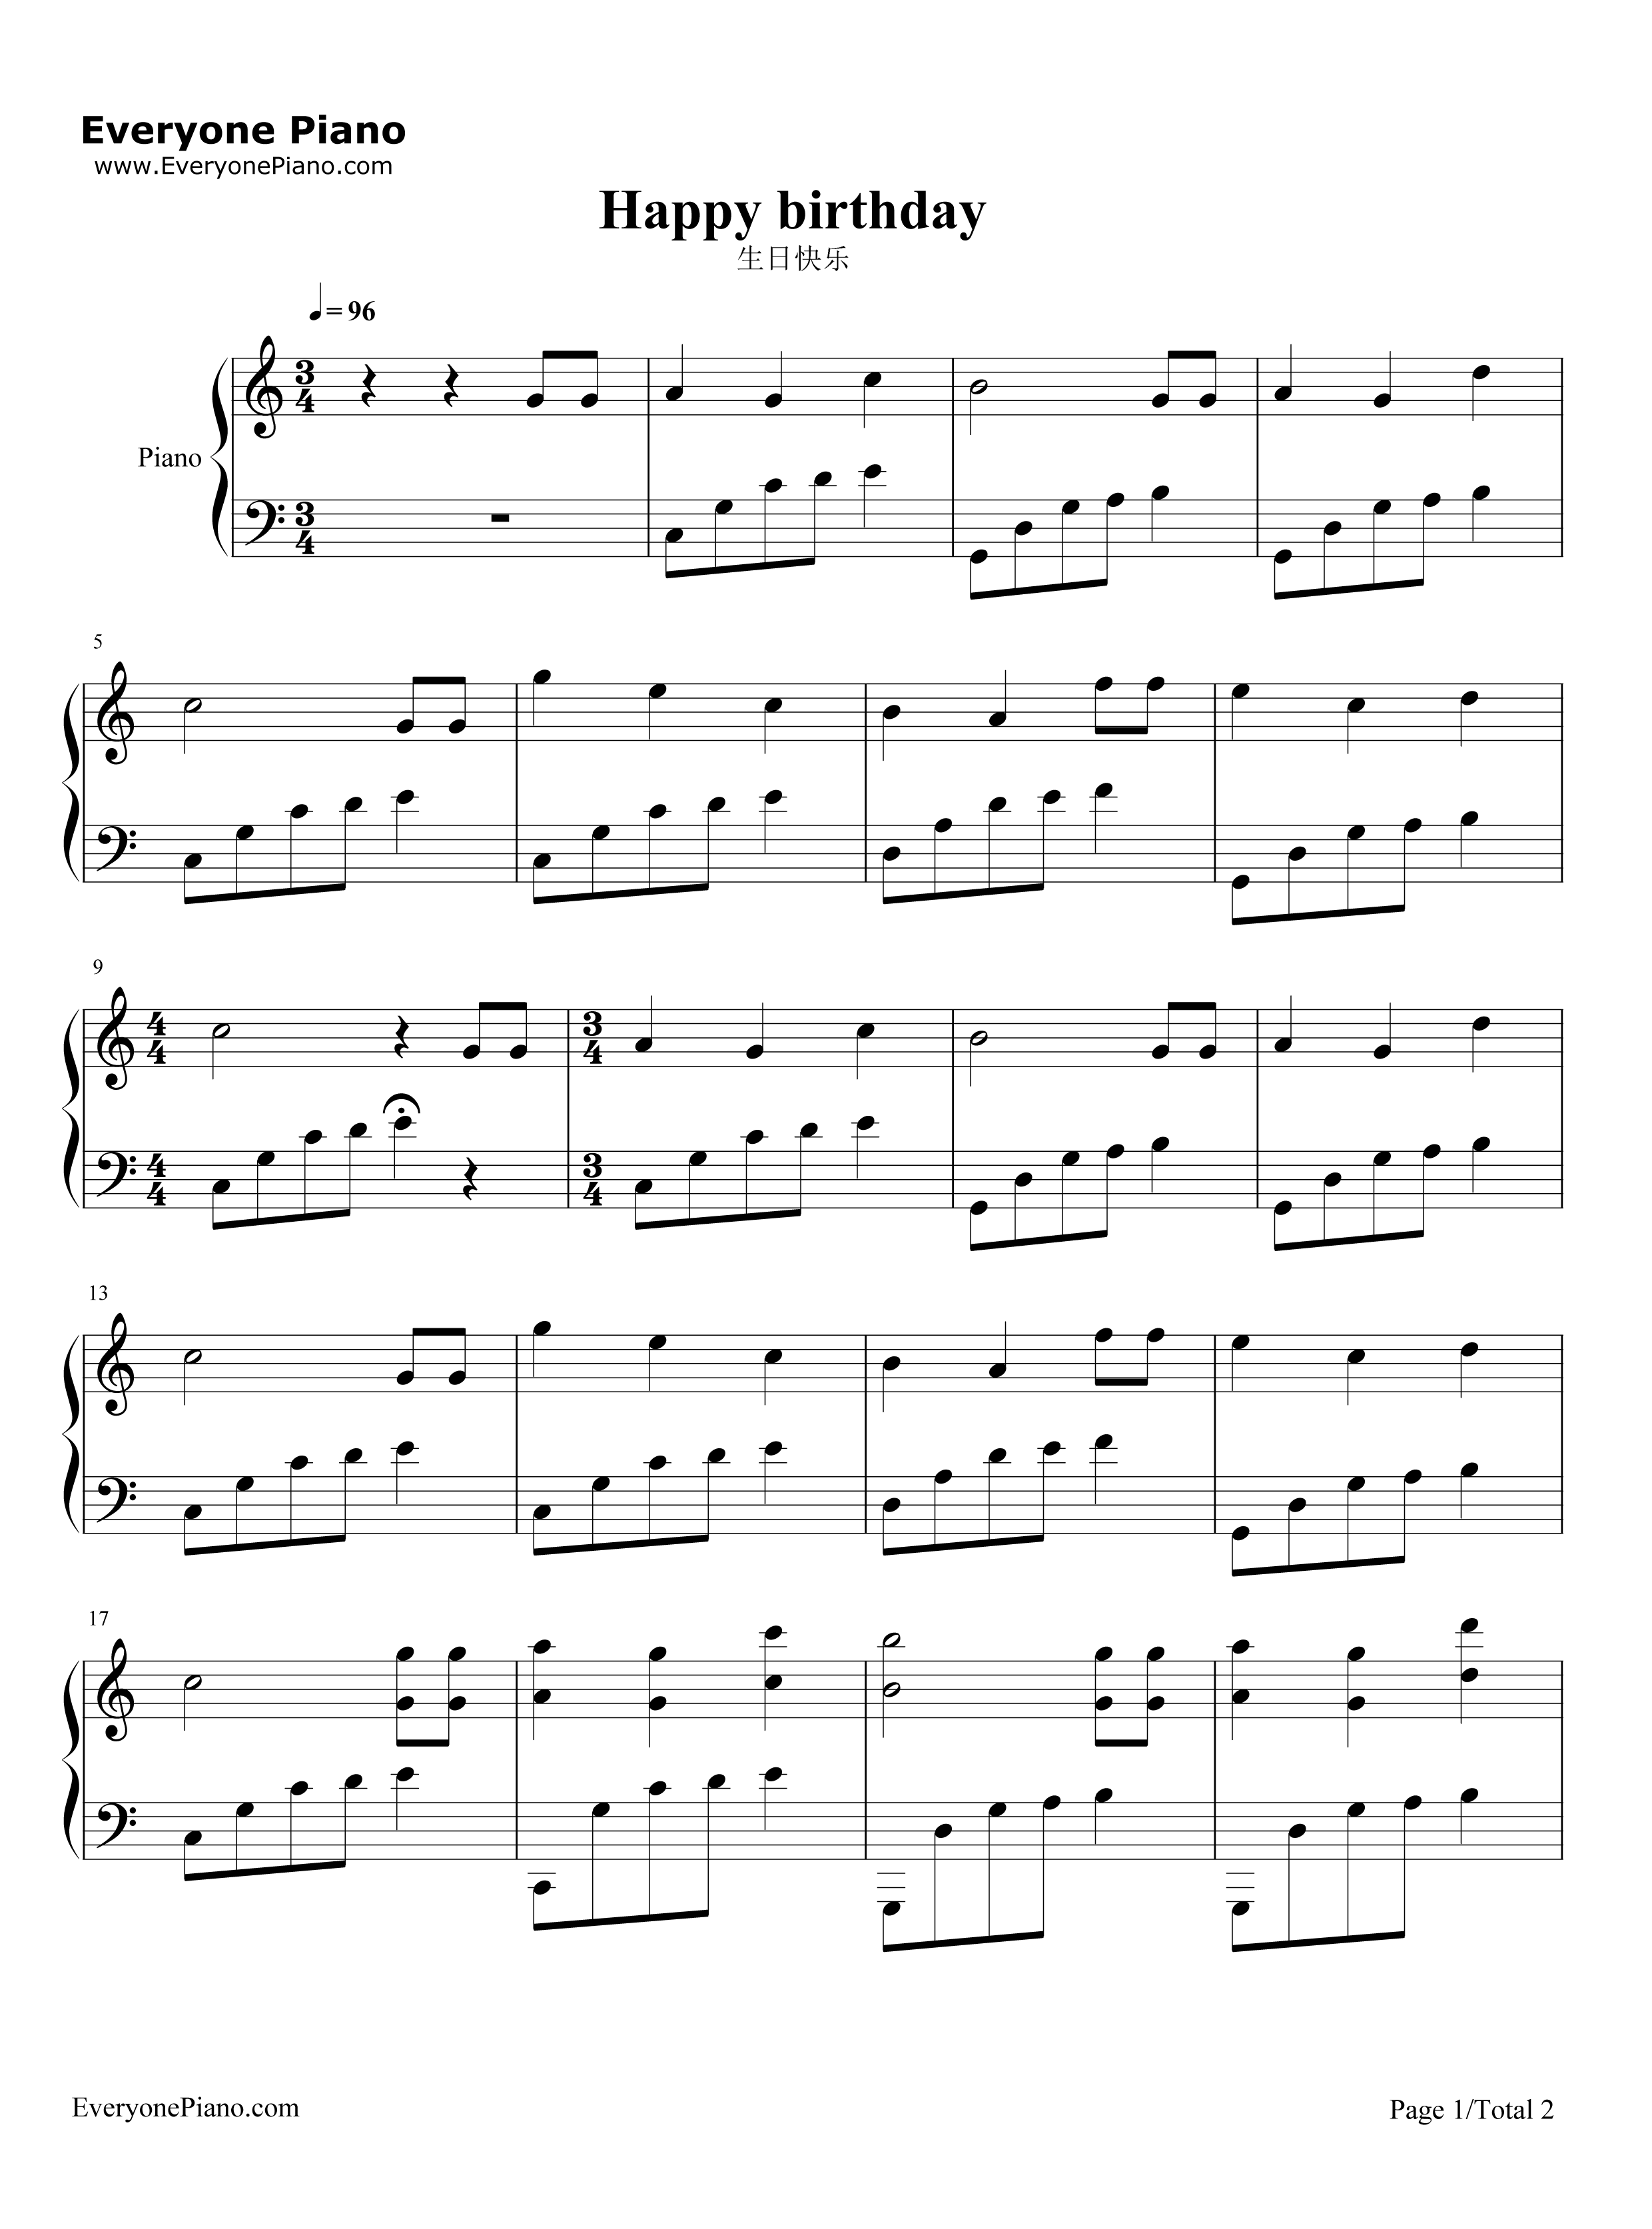 Piano notes for the happy birthday song